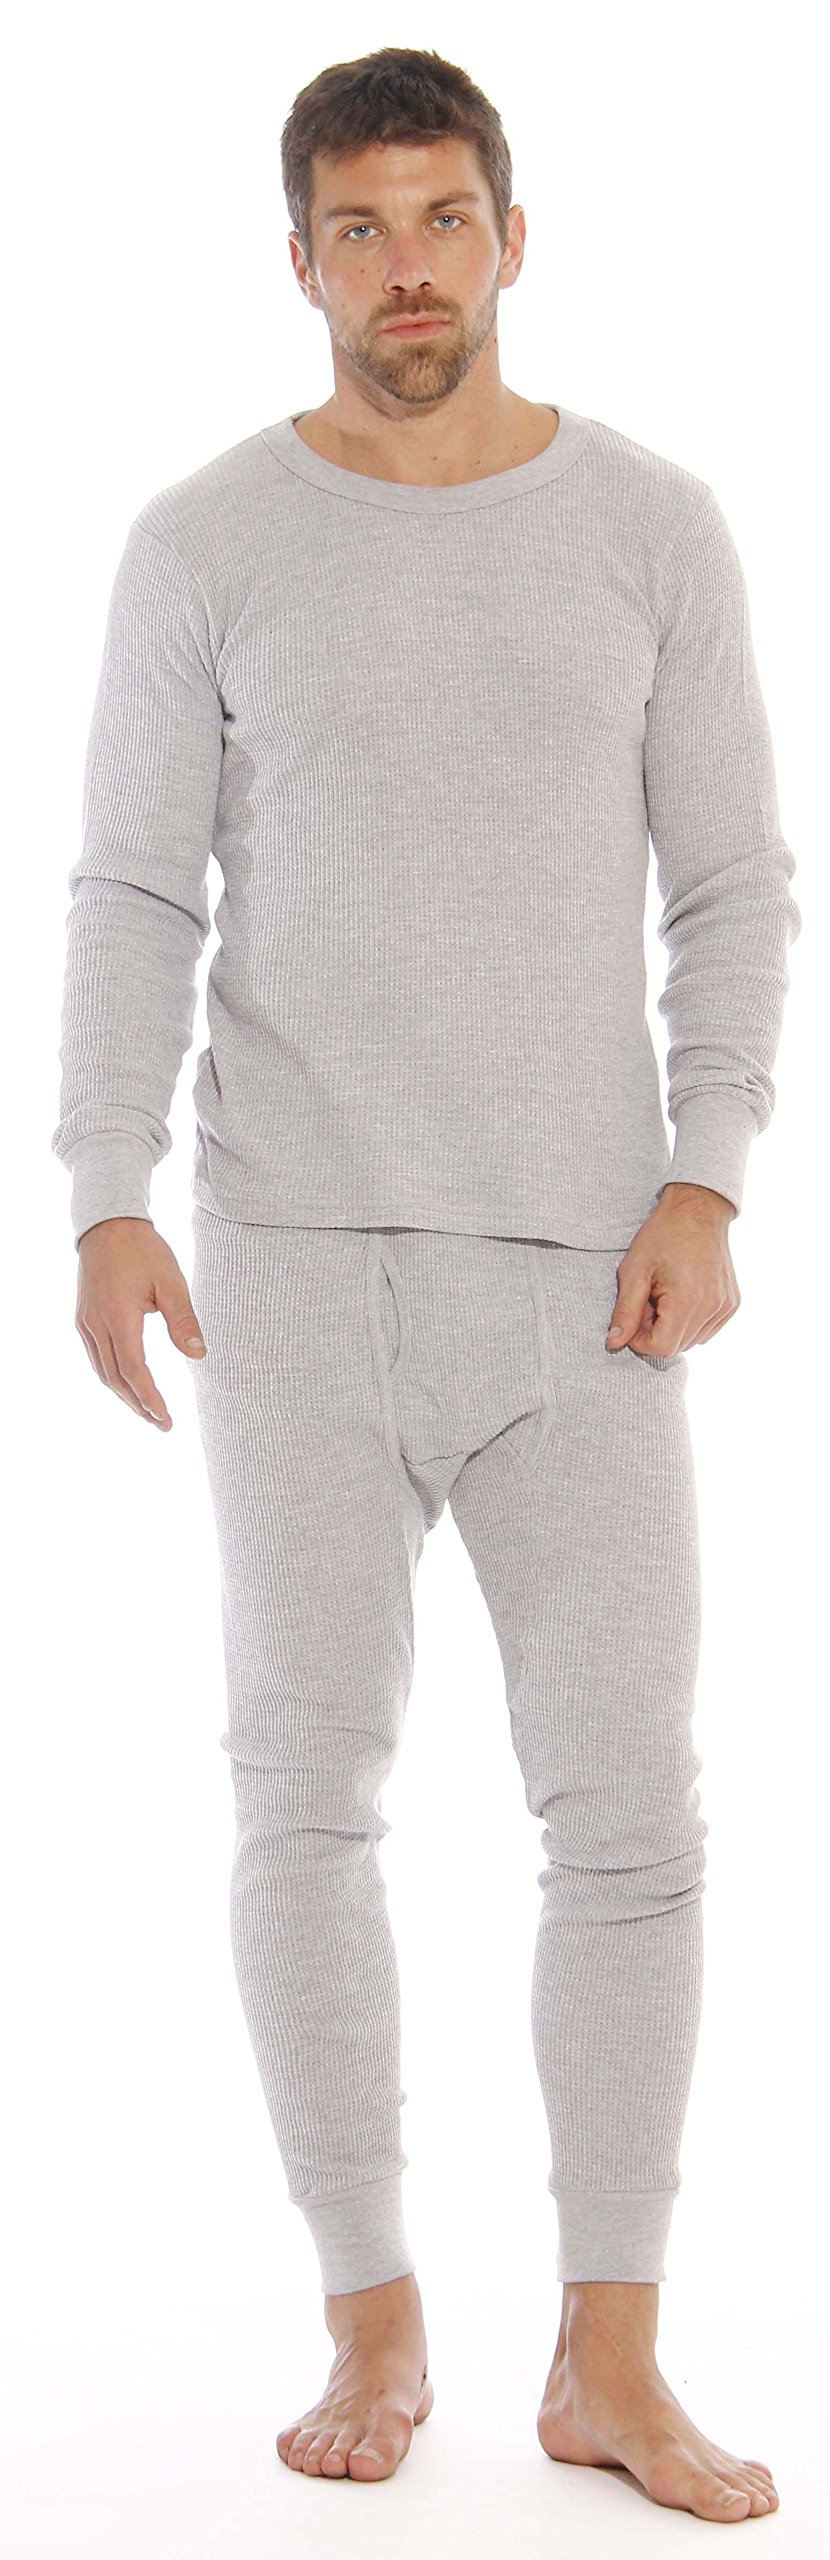 At The Buzzer Thermal Underwear Set For Men 95962-Grey-L